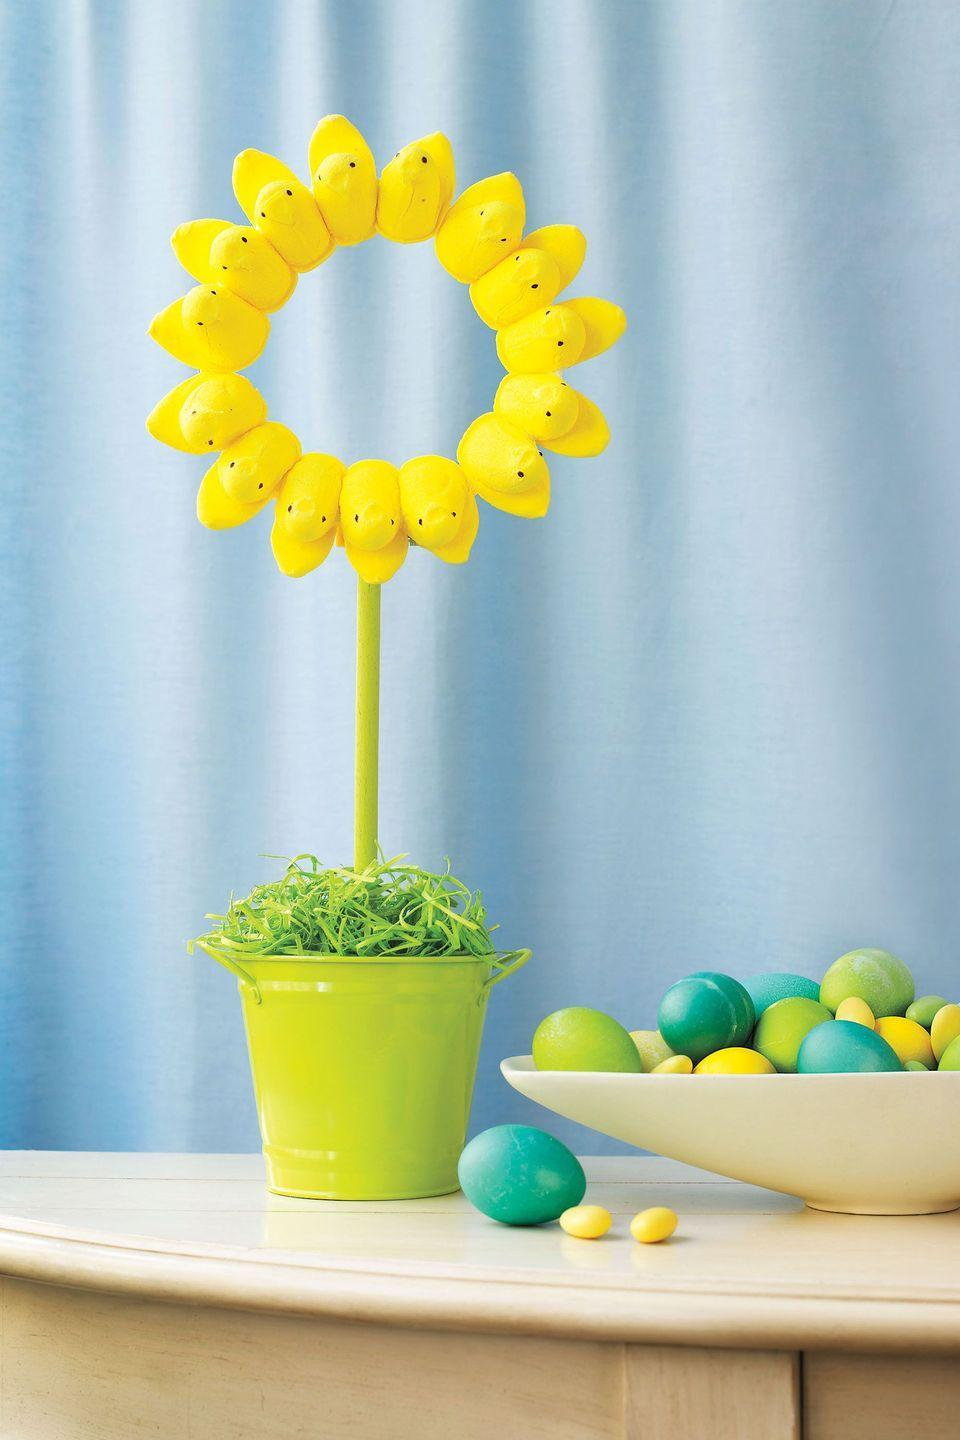 """<p>Celebrate Easter and the arrival of spring with a cute and sweet DIY project. </p><p><strong><em><a href=""""https://www.womansday.com/home/crafts-projects/how-to/g238/easter-craft-how-to-peeps-sunflower-116413/"""" rel=""""nofollow noopener"""" target=""""_blank"""" data-ylk=""""slk:Get the Peeps Sunflower tutorial."""" class=""""link rapid-noclick-resp"""">Get the Peeps Sunflower tutorial.</a></em></strong></p><p><strong><a class=""""link rapid-noclick-resp"""" href=""""https://www.amazon.com/Marshmallow-Peeps-Yellow-Chicks-Tray/dp/B00BA0BJOA?tag=syn-yahoo-20&ascsubtag=%5Bartid%7C10070.g.1751%5Bsrc%7Cyahoo-us"""" rel=""""nofollow noopener"""" target=""""_blank"""" data-ylk=""""slk:SHOP PEEPS"""">SHOP PEEPS</a></strong></p>"""